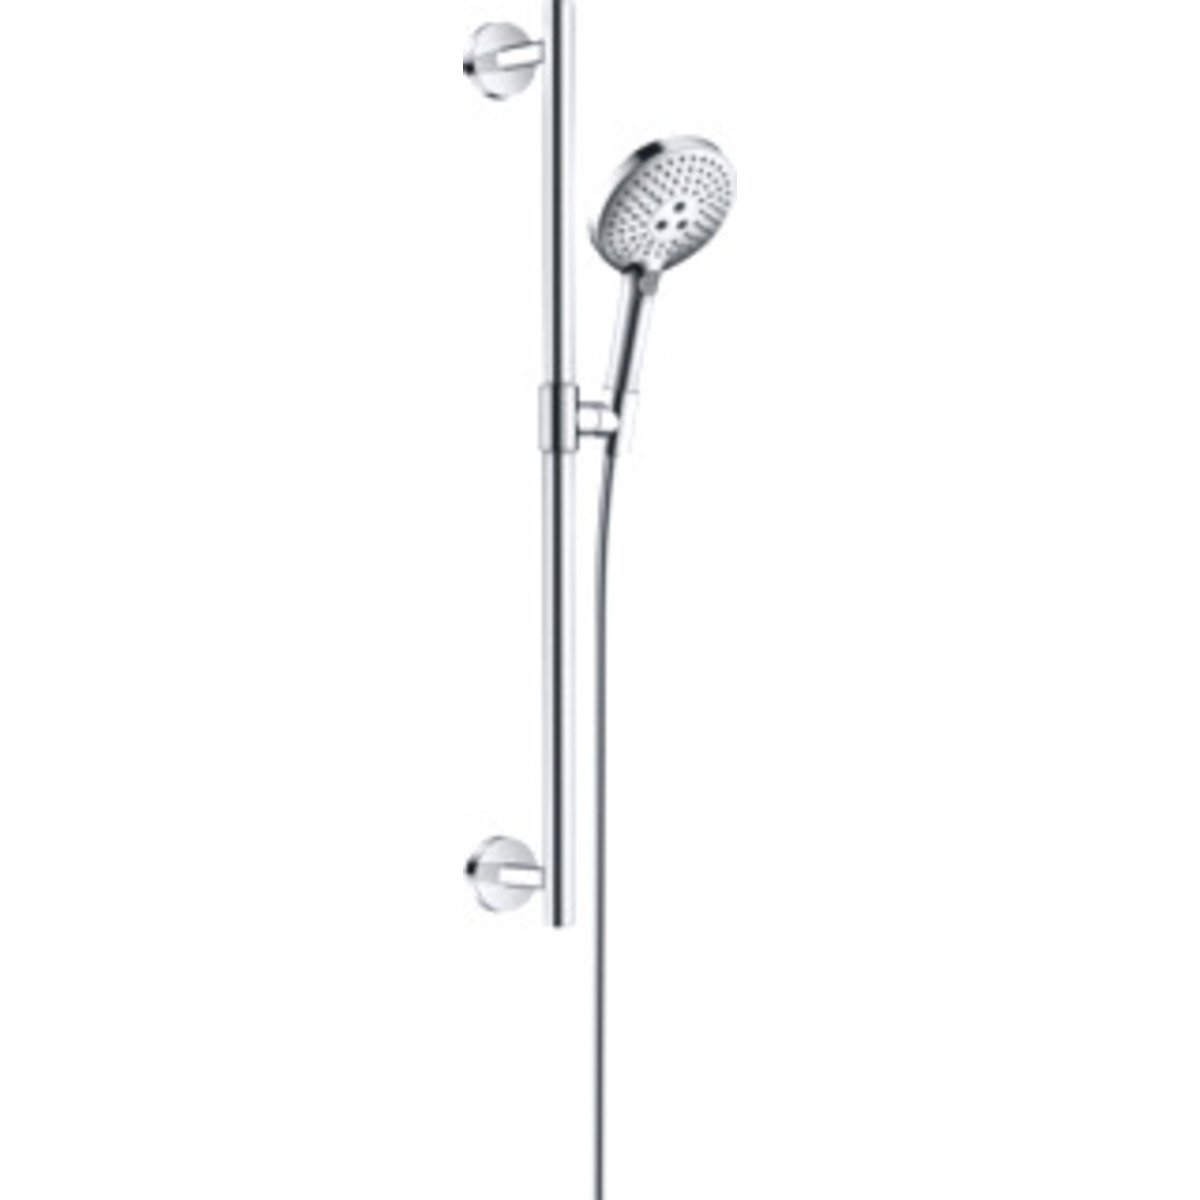 hansgrohe raindance select s 120 unica comfort ensemble de douche 65cm chrome 26320000. Black Bedroom Furniture Sets. Home Design Ideas